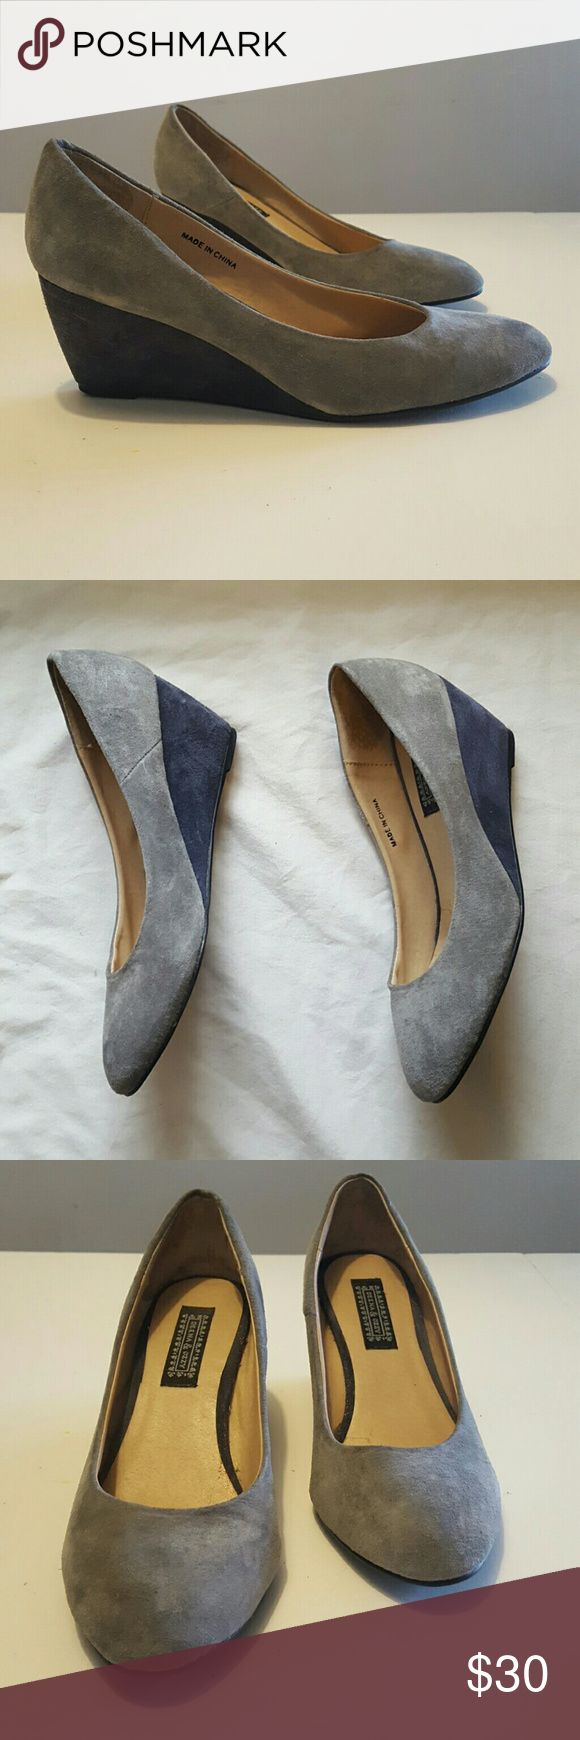 Deena and Ozzy Suede Pumps Gray with bluish purple-colored wedge heels. Super comfortable. Worn twice. Clean,  with a slight spot on 1 toe (see last photo). Deena & Ozzy Shoes